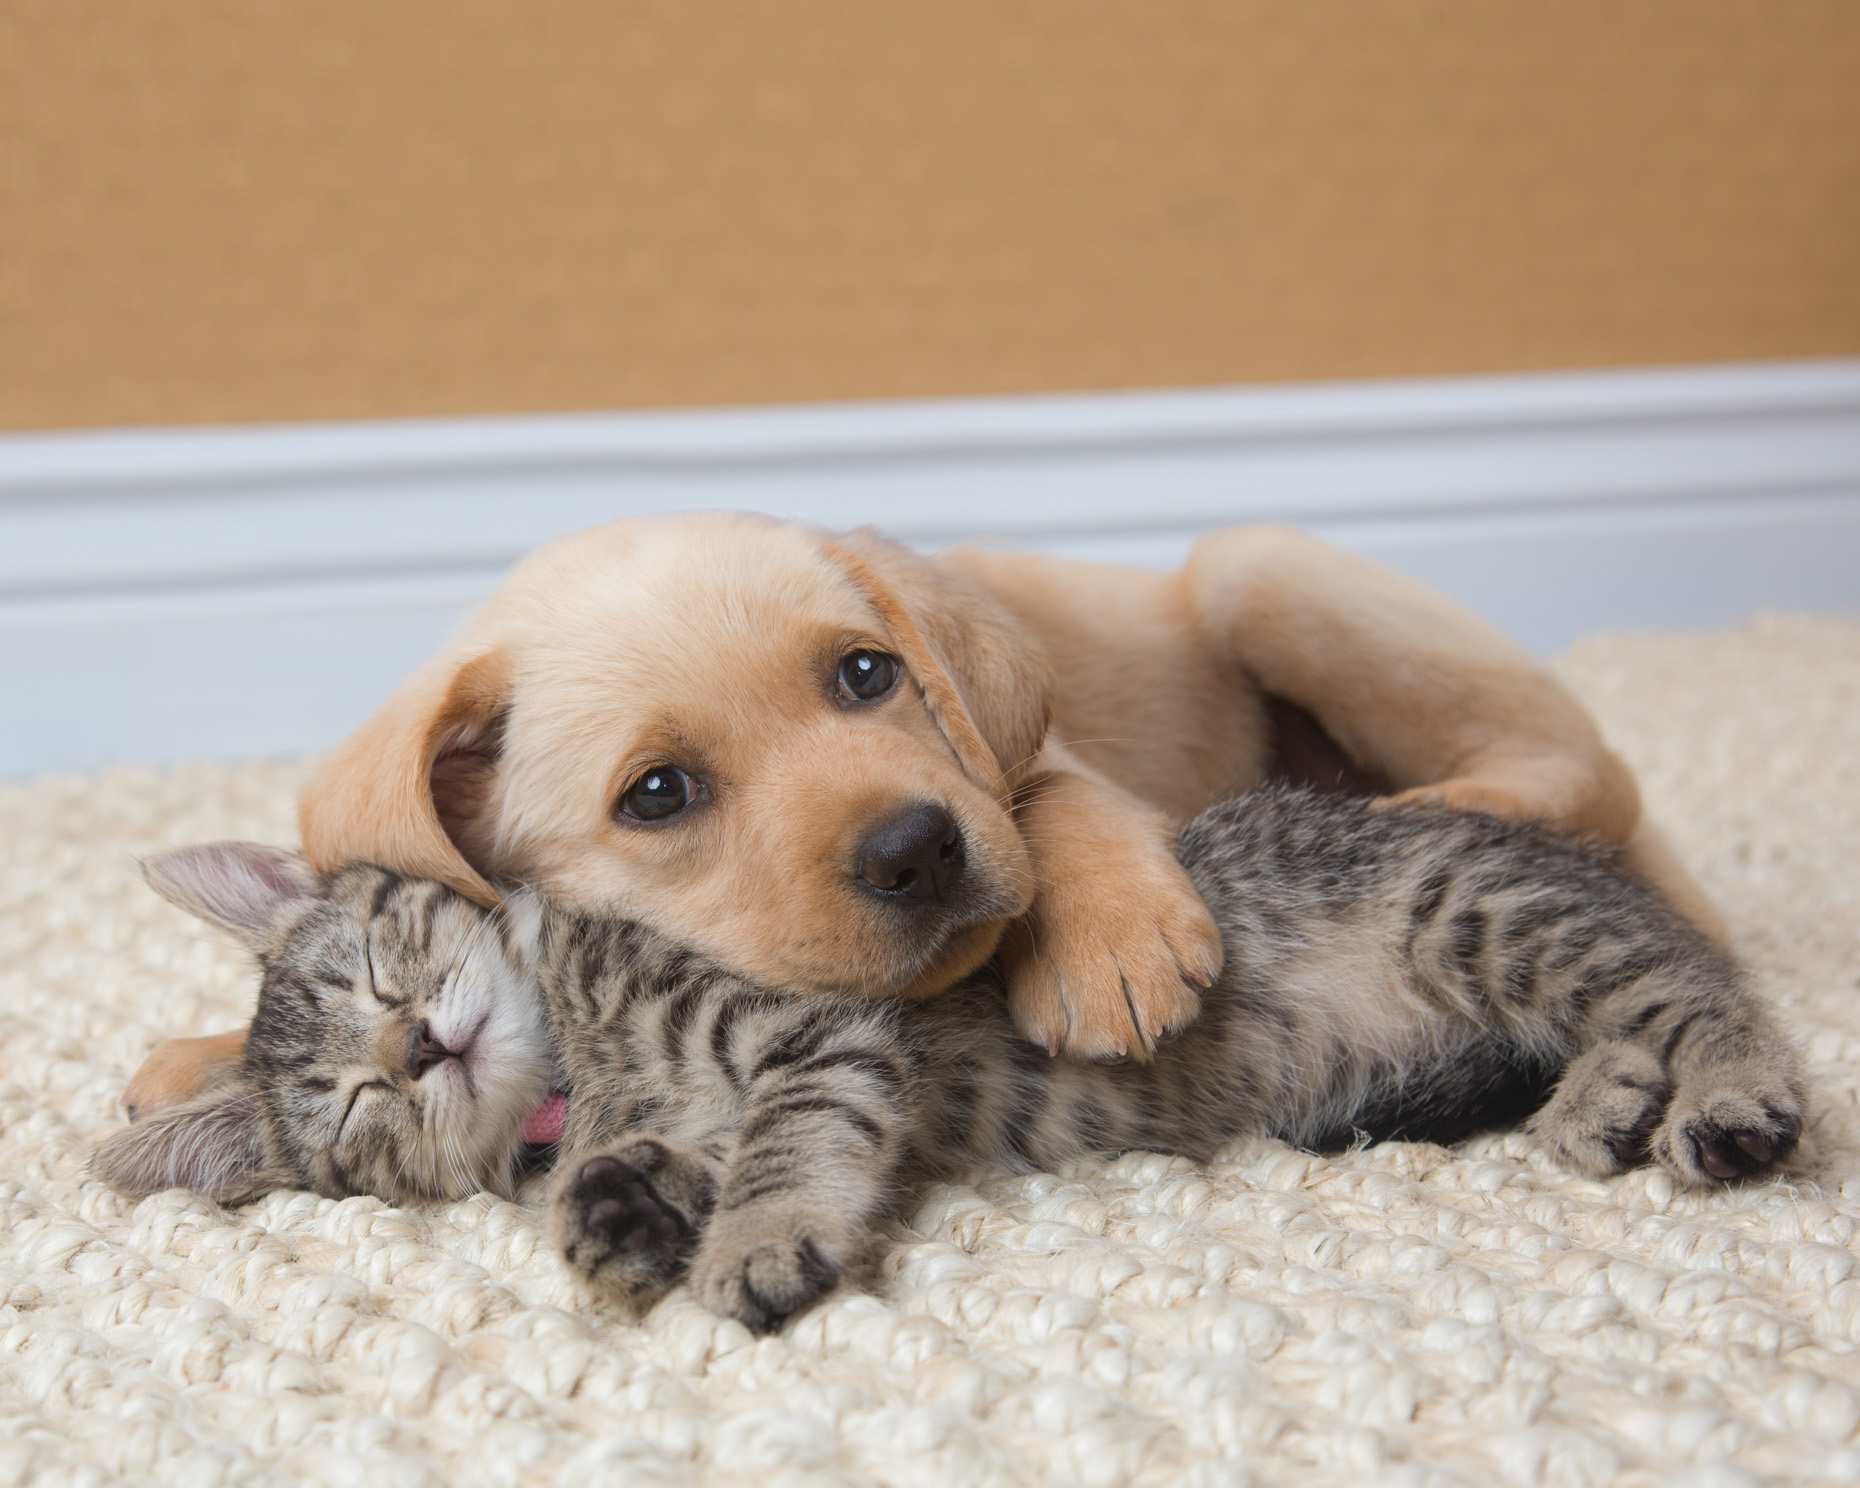 Cat and Dog Photography | Puppy with Sleeping Kitten by Mark Rogers